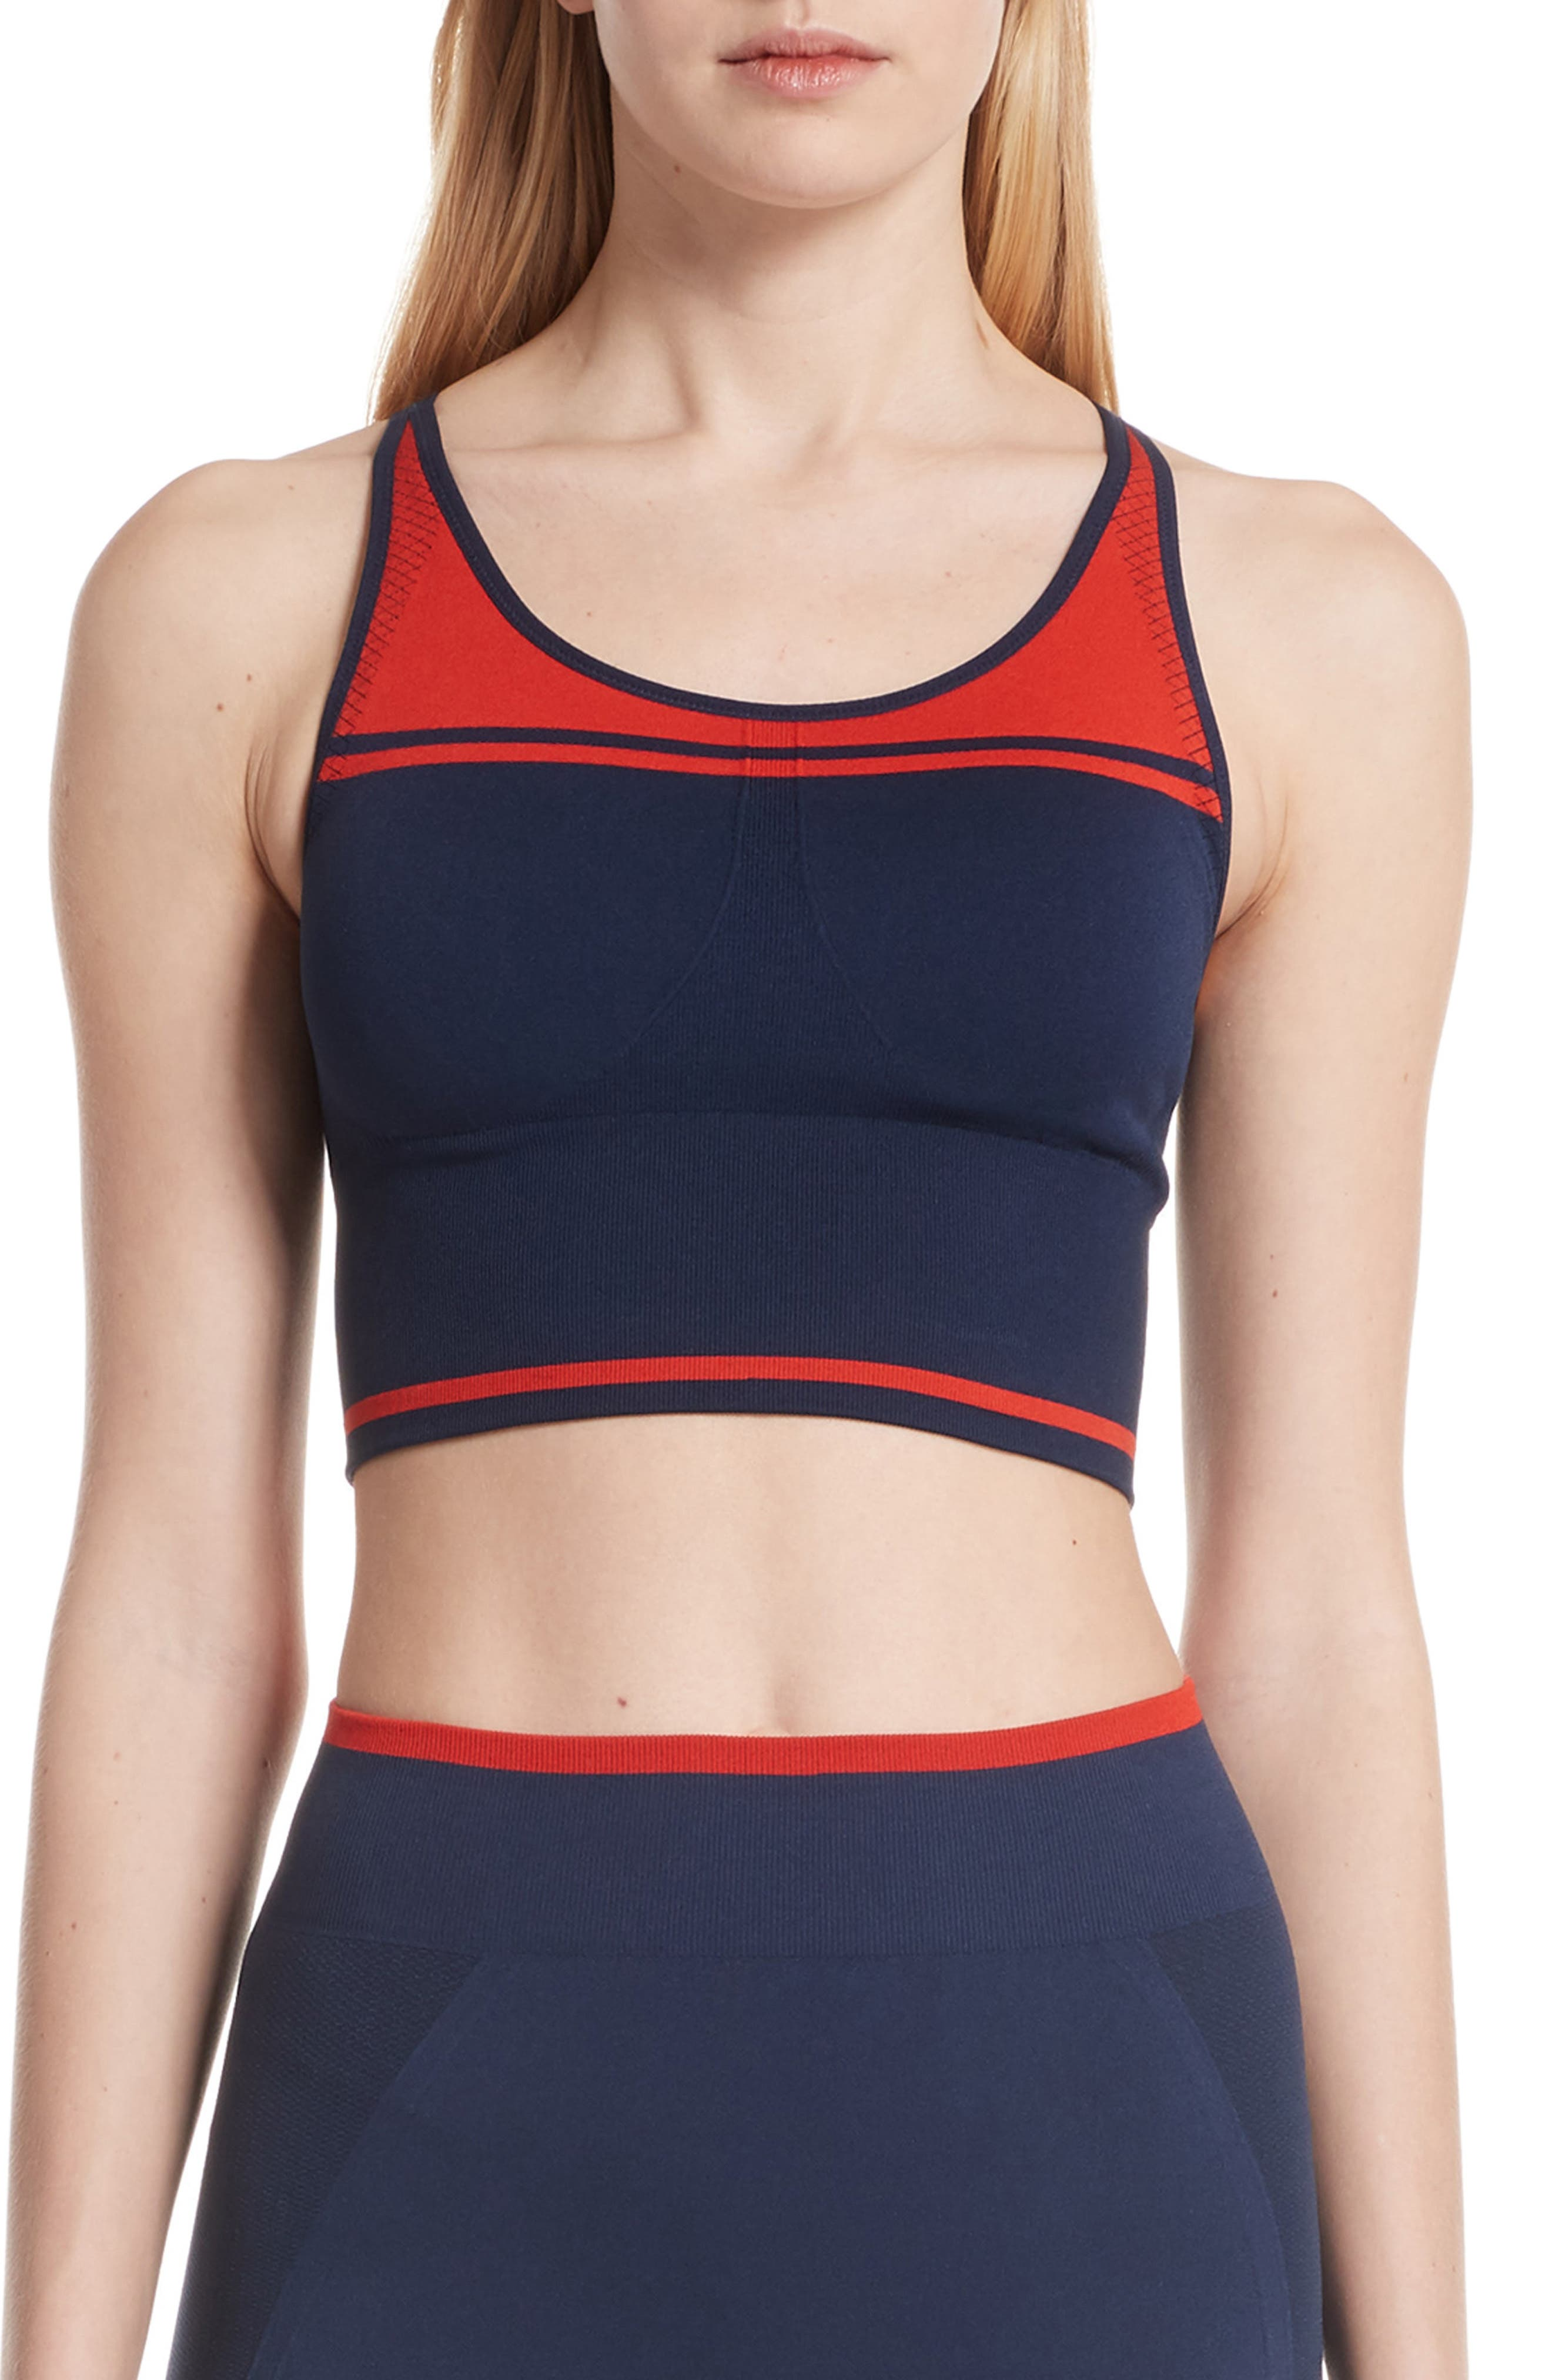 Two-Tone Seamless Camisole Long Bra,                             Main thumbnail 1, color,                             TORY NAVY/ RED